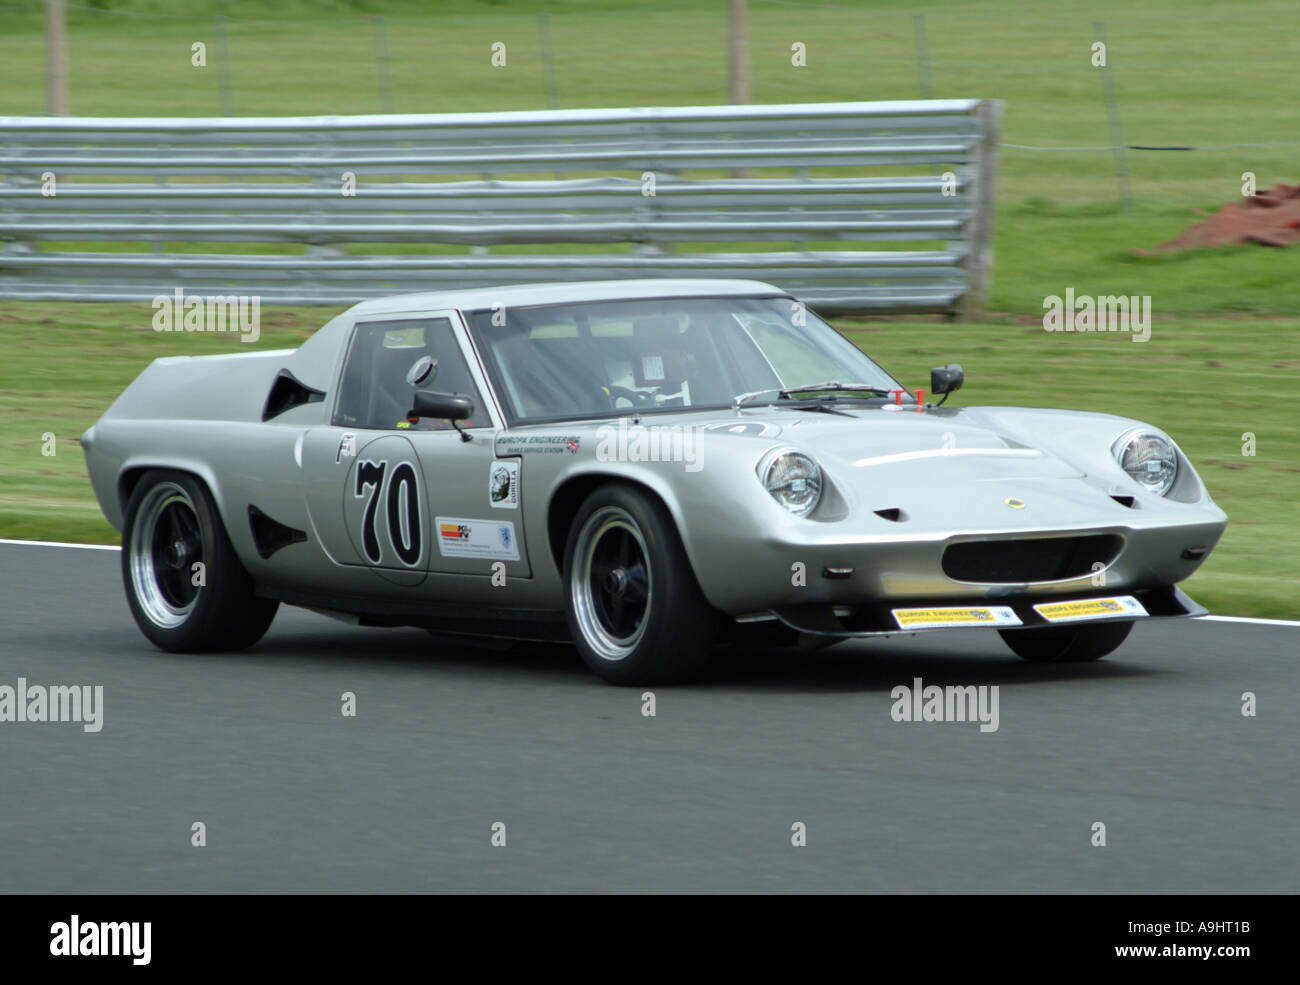 Silver Lotus Europa Banks TC 1598 Racing at Oulton Park Motor ...